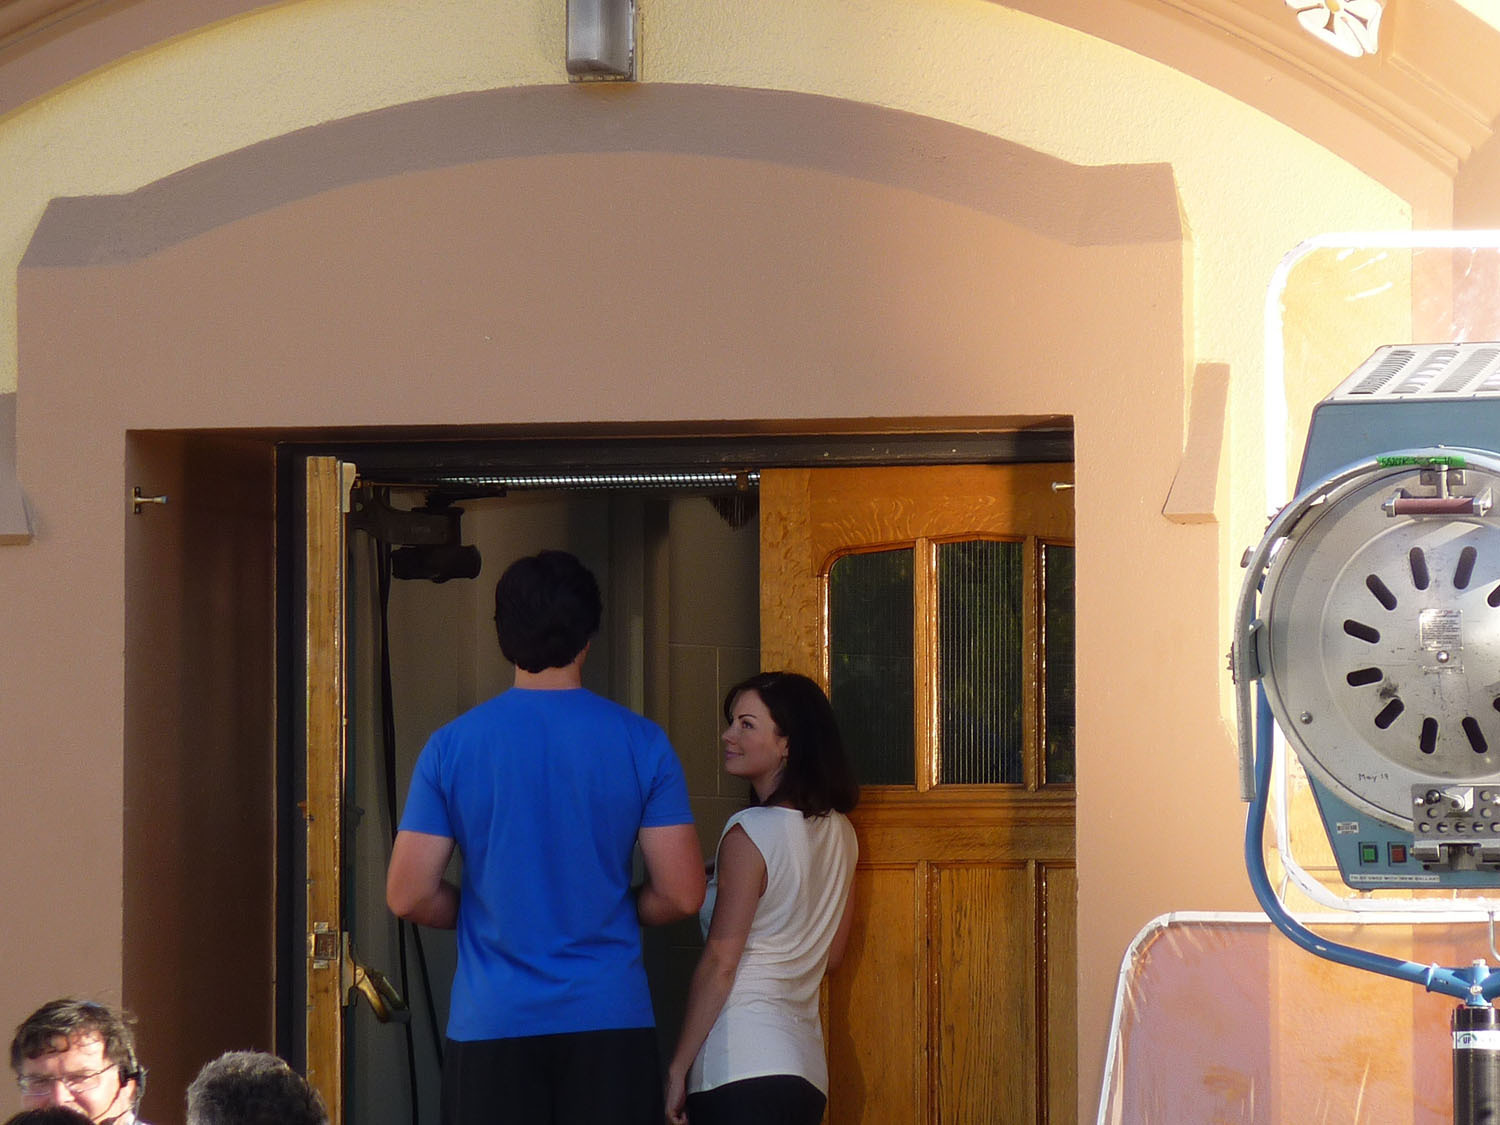 Tom Welling and Erica Durance filming the 200 episode of Thị trấn Smallville